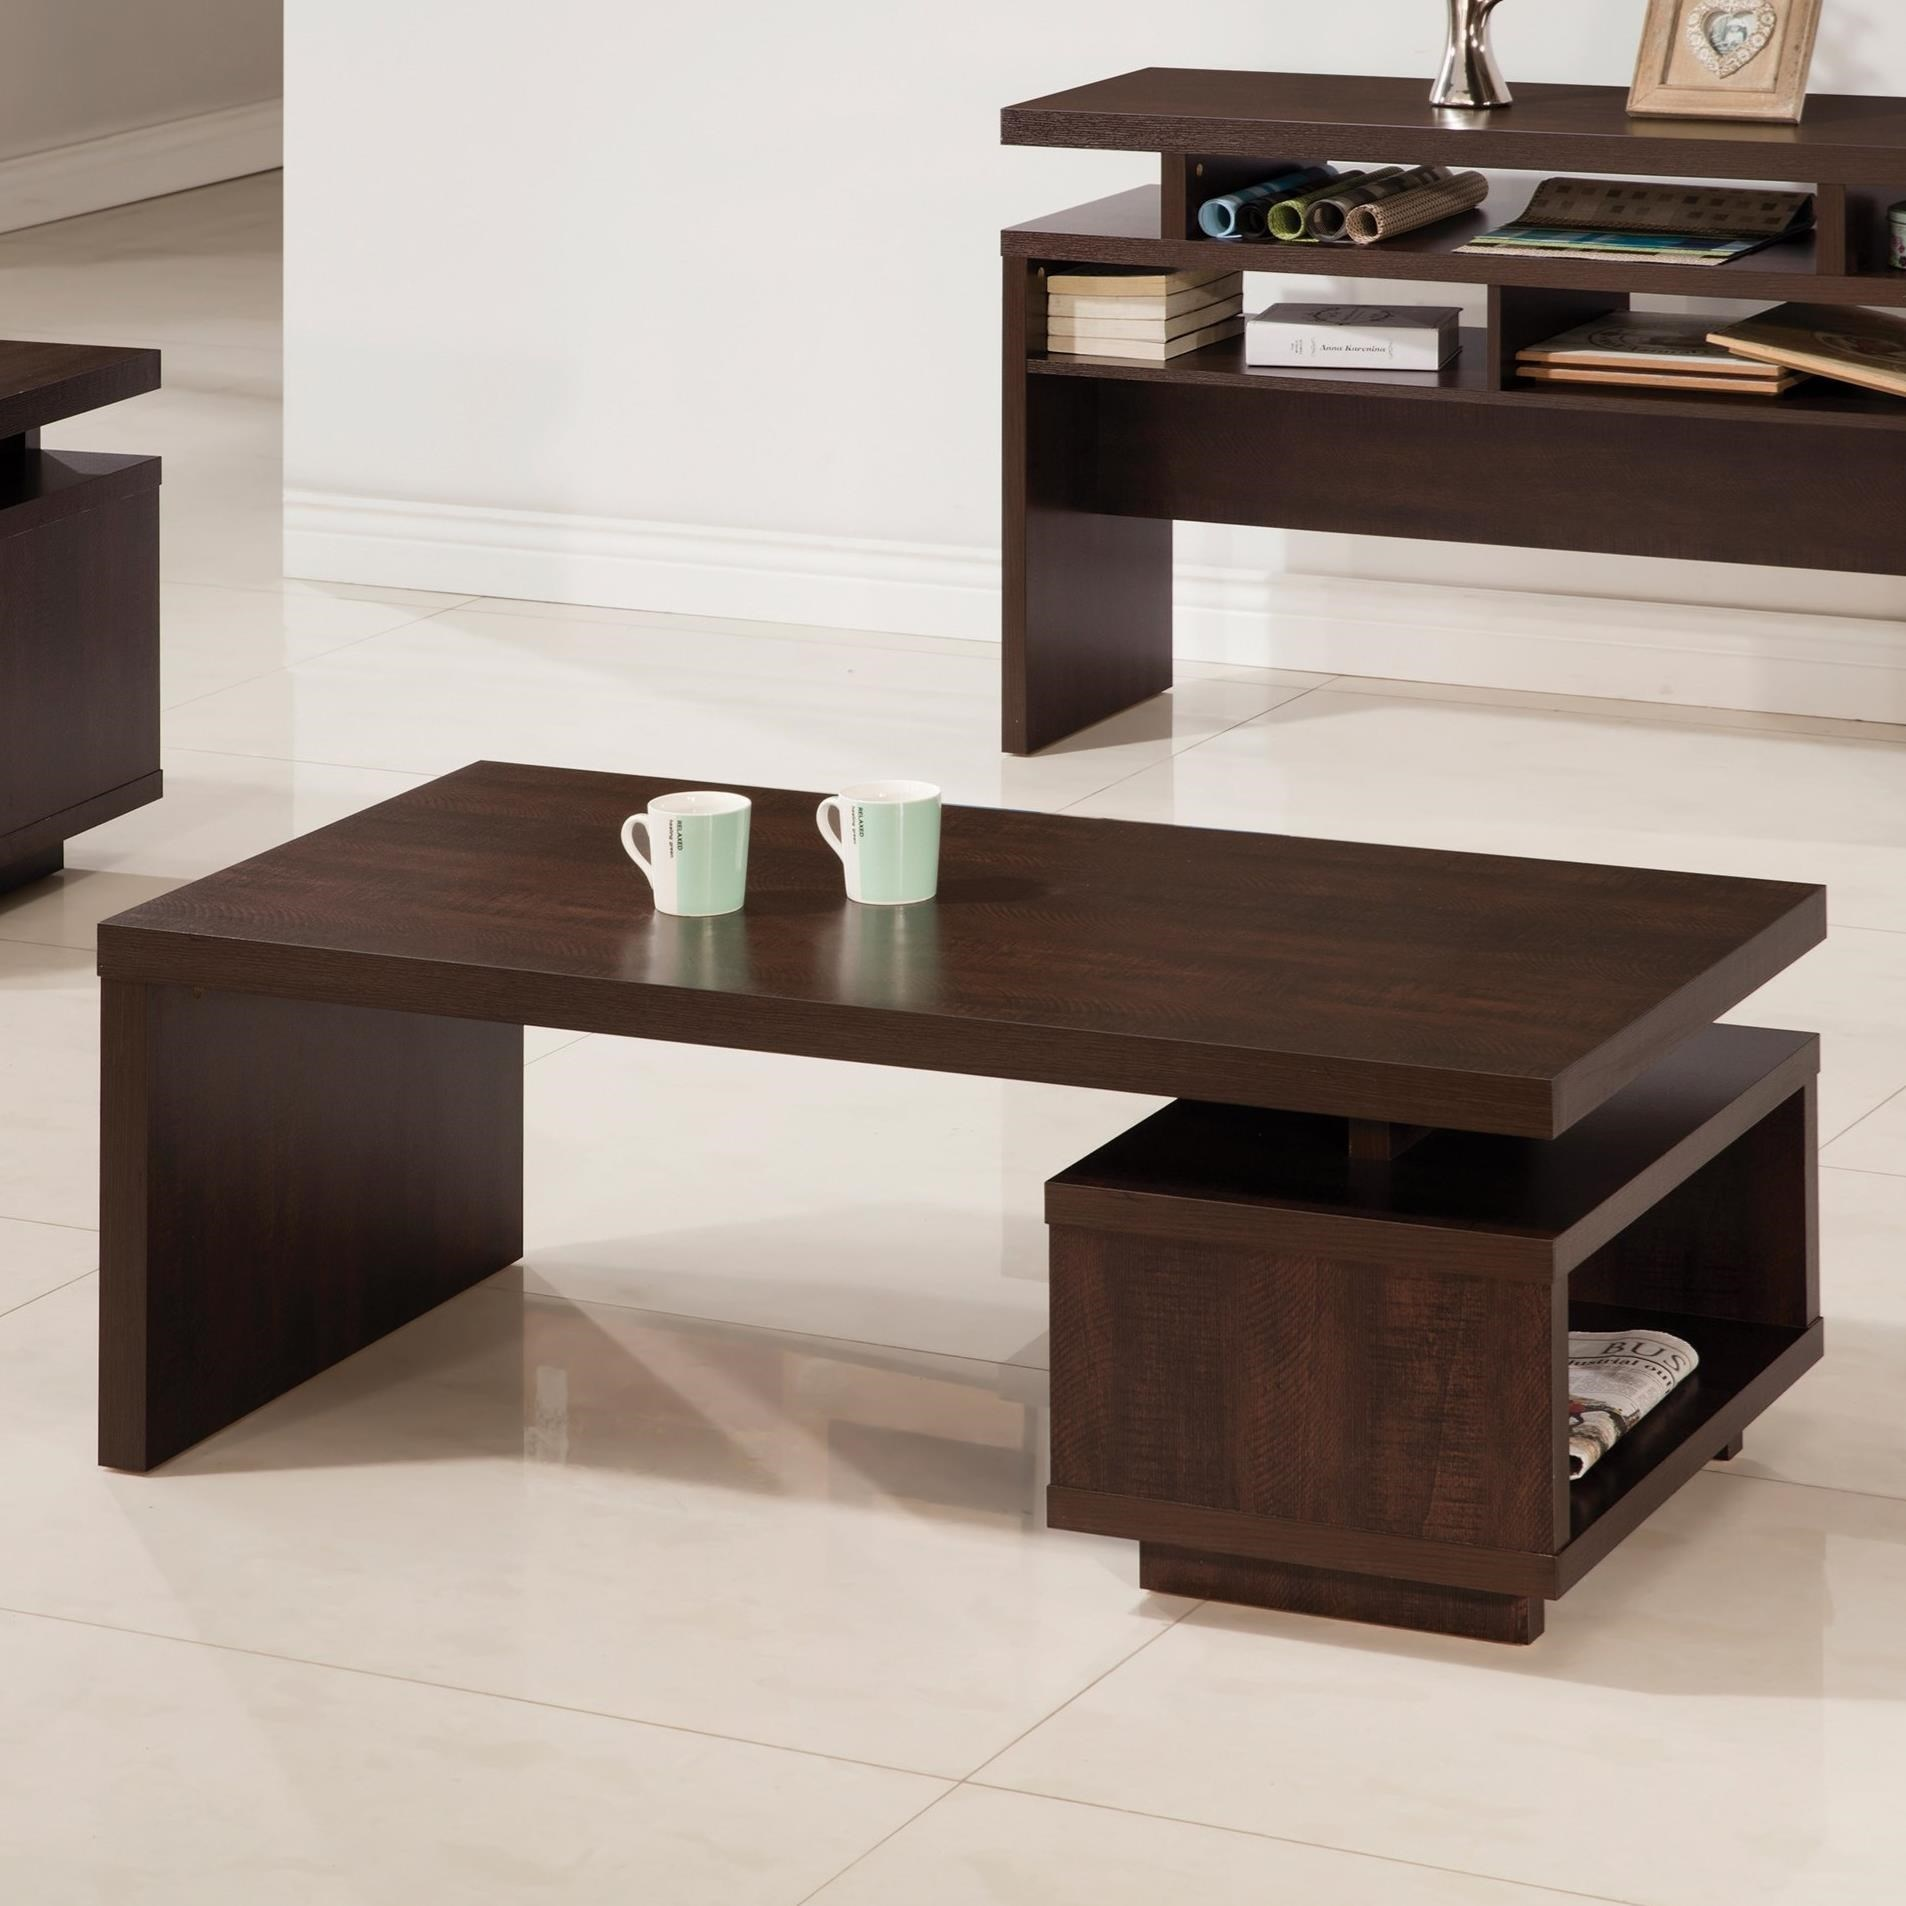 Modern Coffee Table with Floating Top Design by Coaster